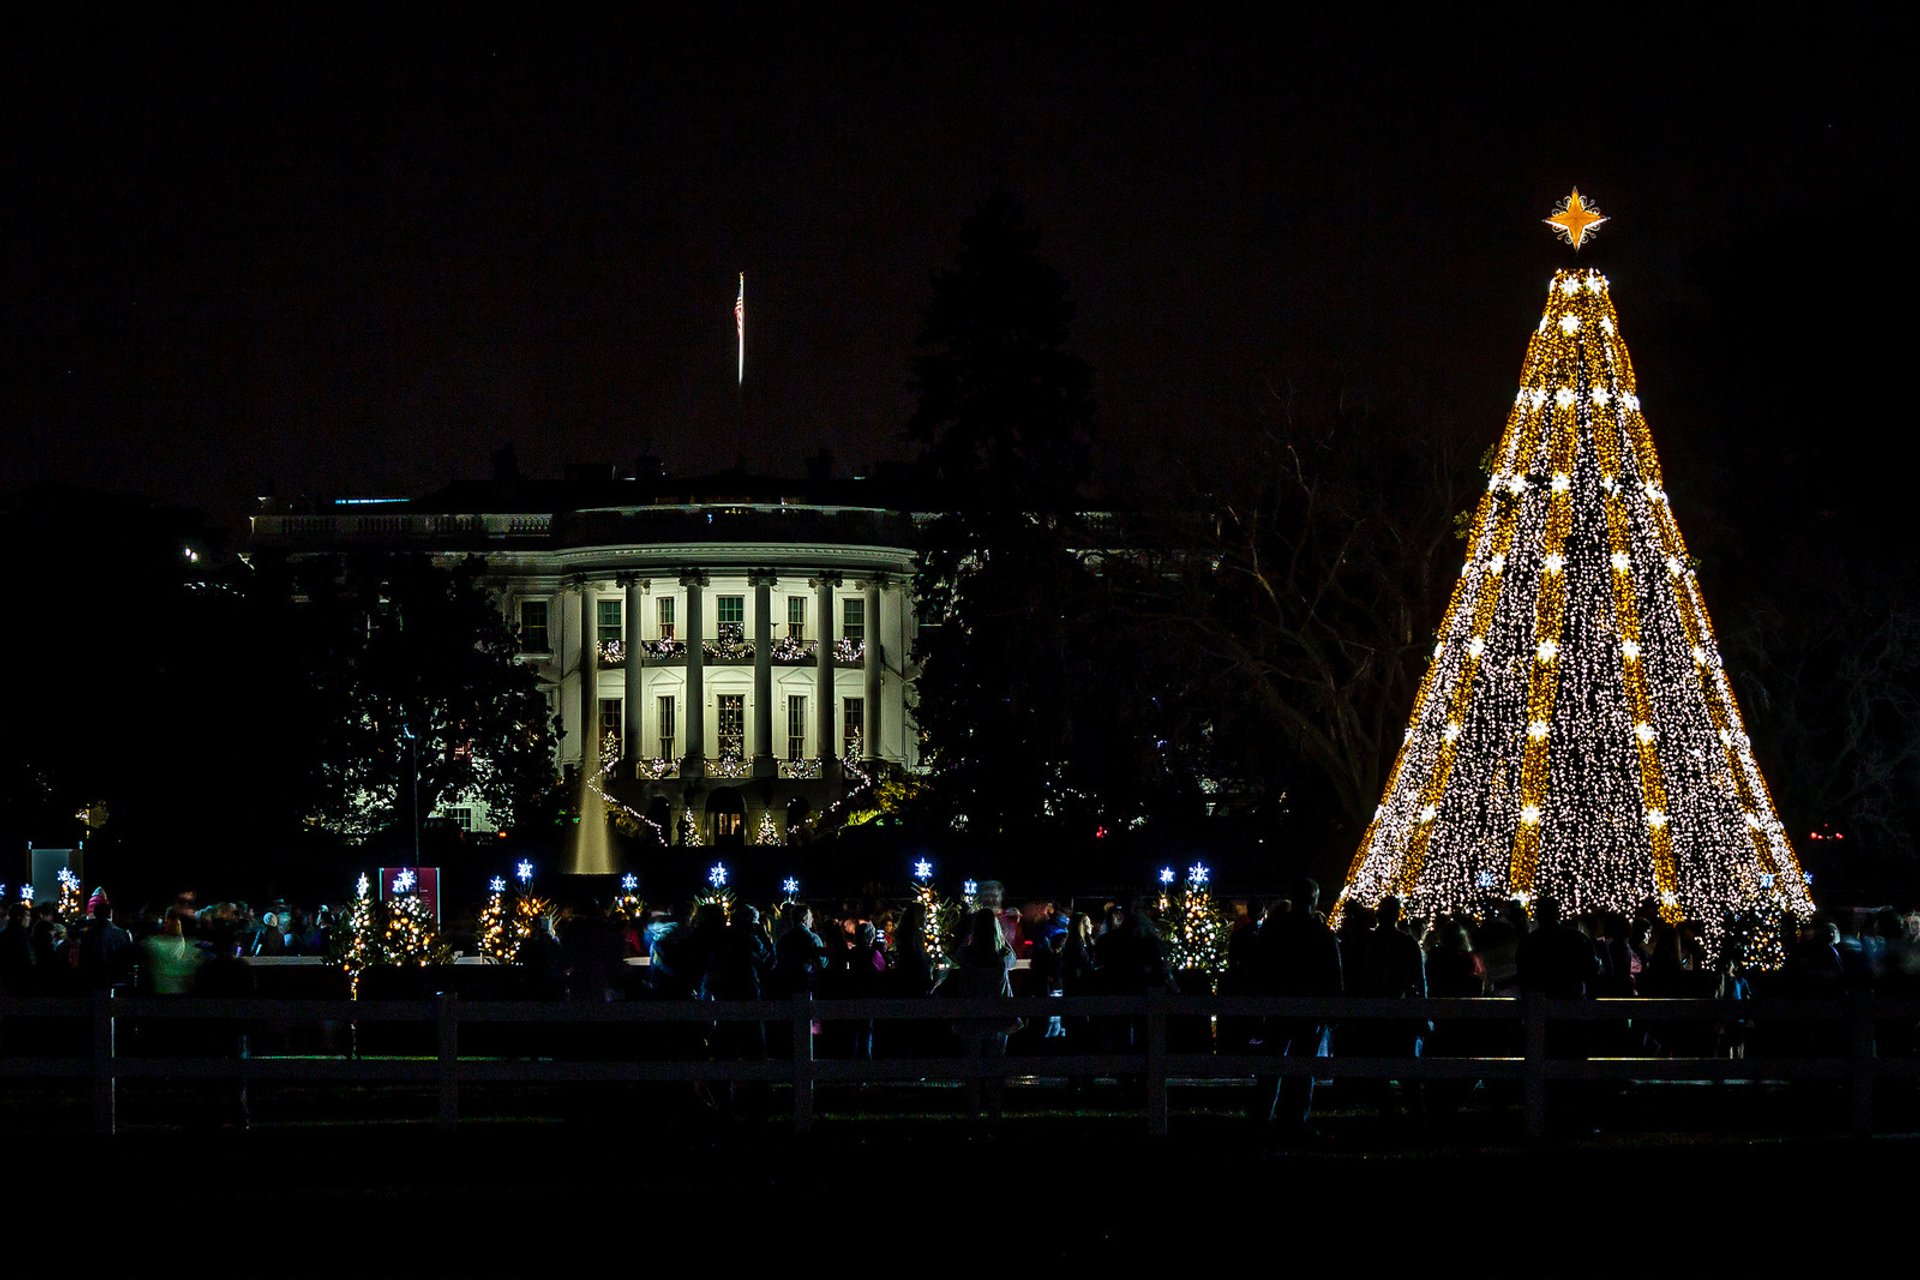 National Christmas Tree Lighting Ceremony in Washington, D.C. 2020 - Best Time